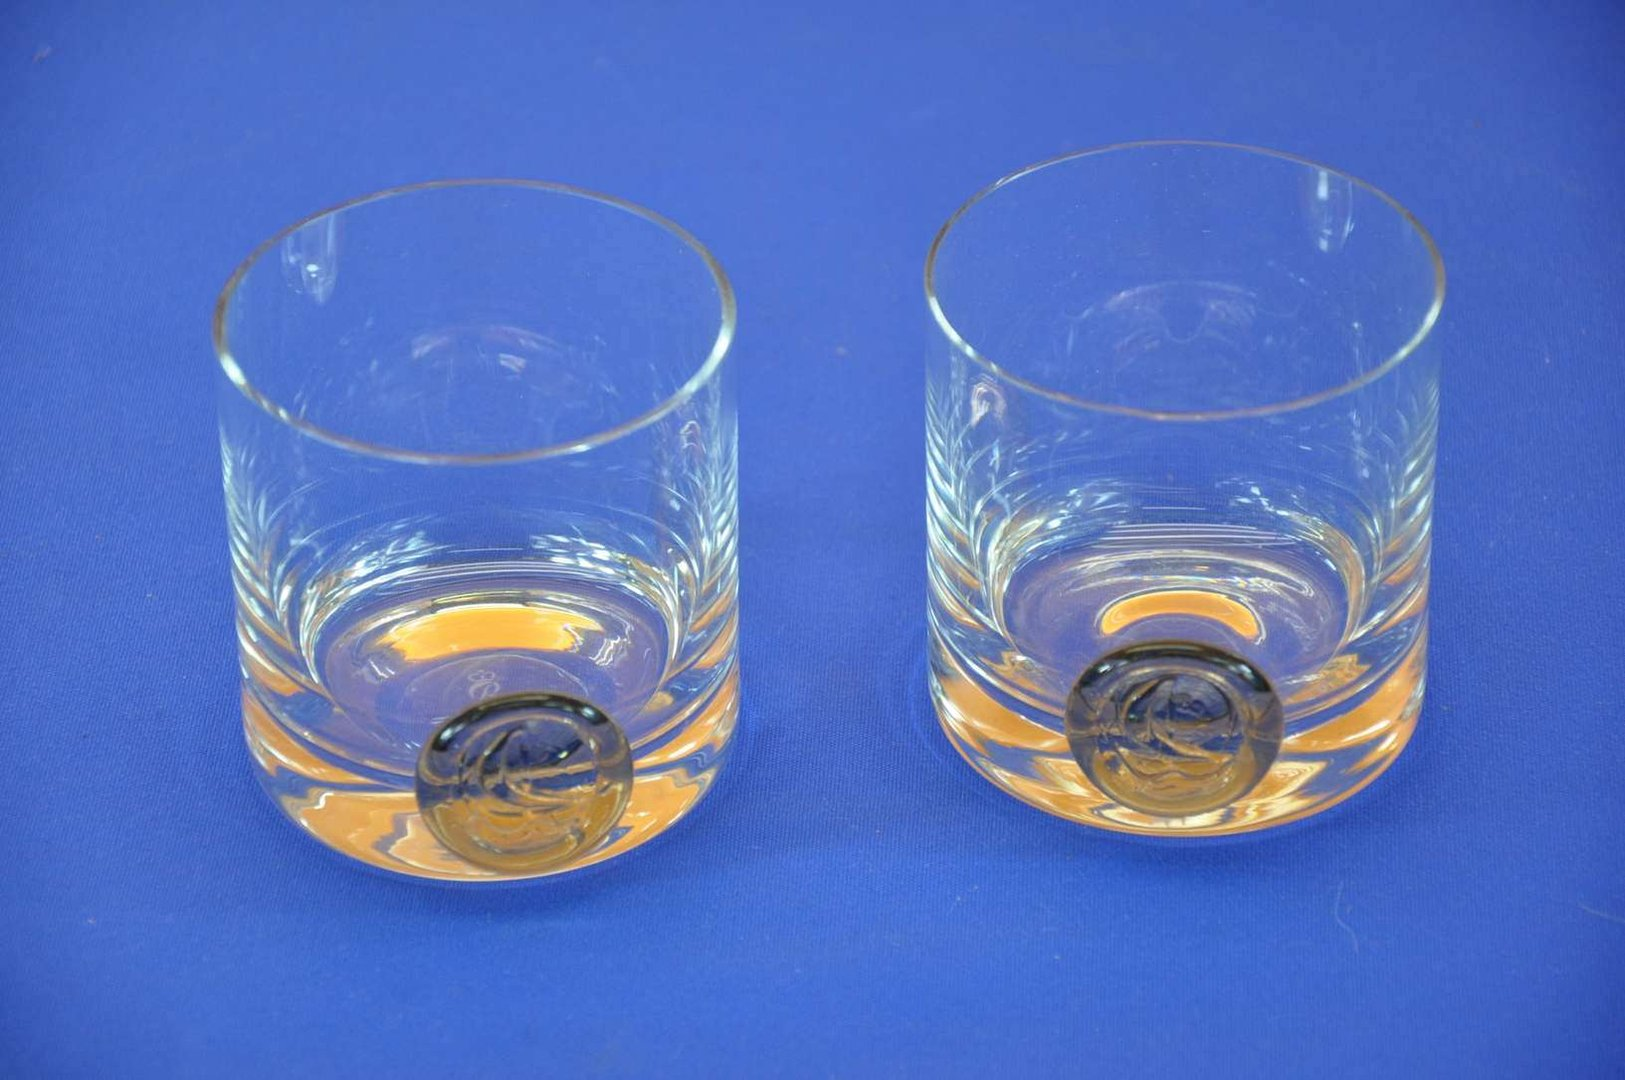 whisky glass 2 piece pirate seal wiinblad kusera